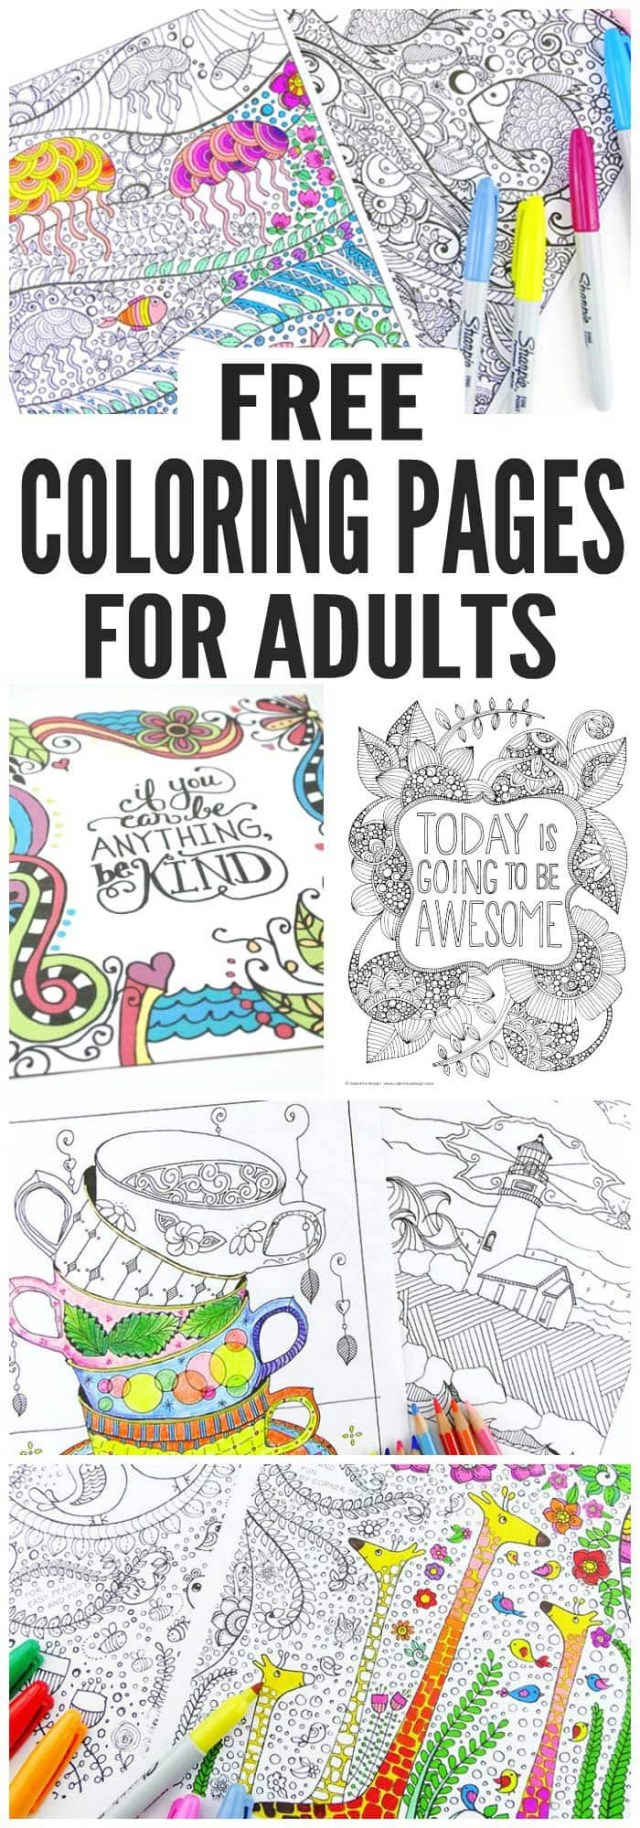 Free Coloring Pages For Adults Free Coloring Pages For Adults Easy Peasy And Fun